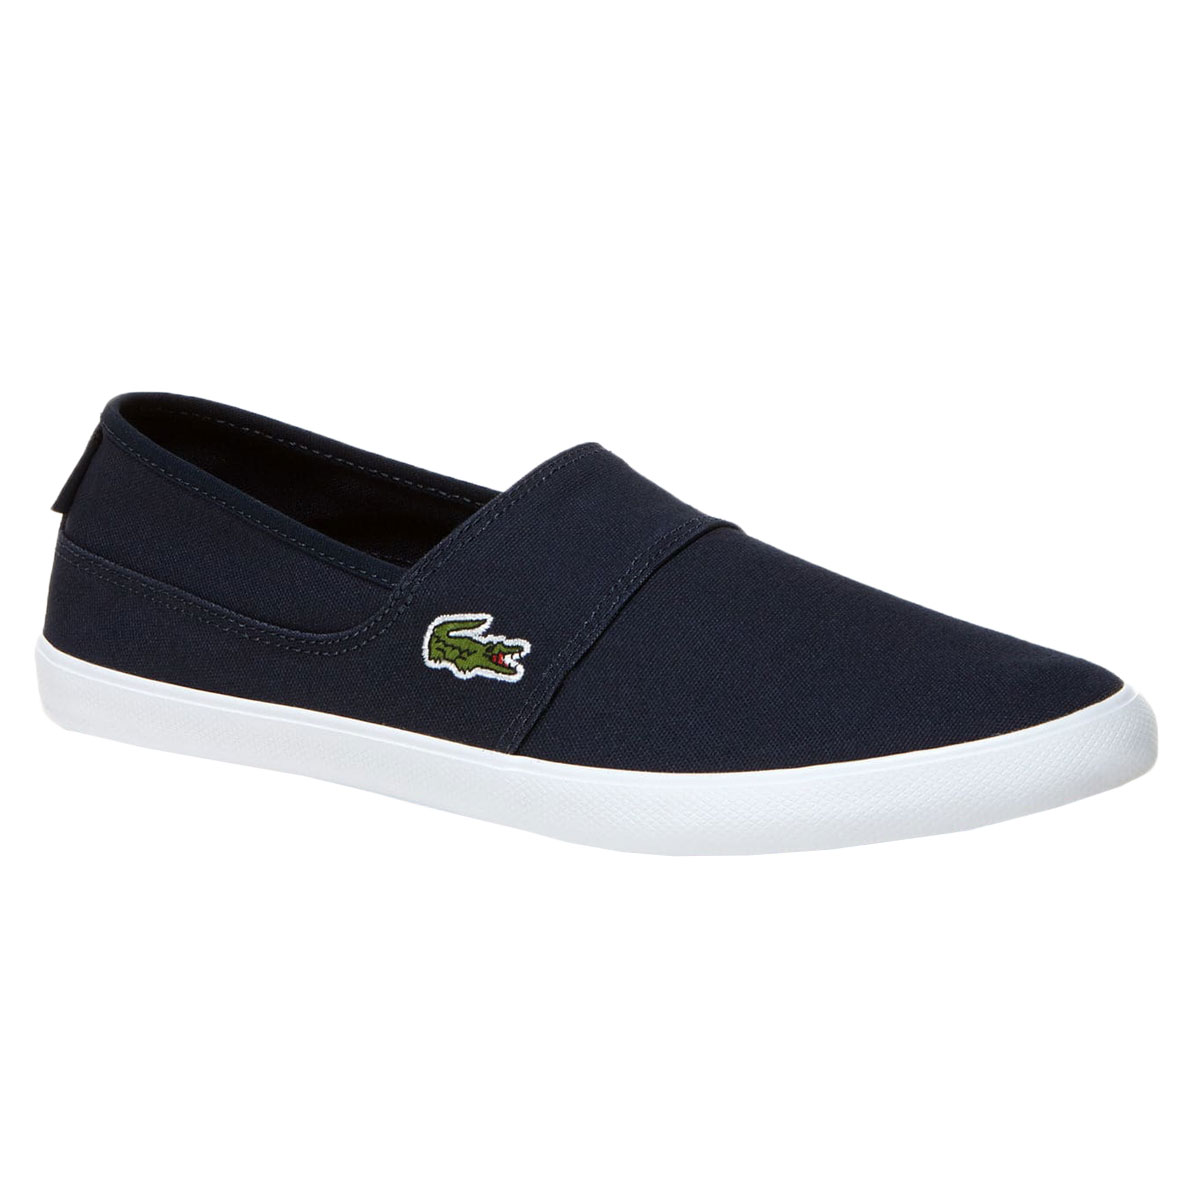 b61d33fa0 Lacoste Marice BL 2 Mens Slip on Dark Blue Shoes 7 UK. About this product.  Picture 1 of 5  Picture 2 of 5 ...